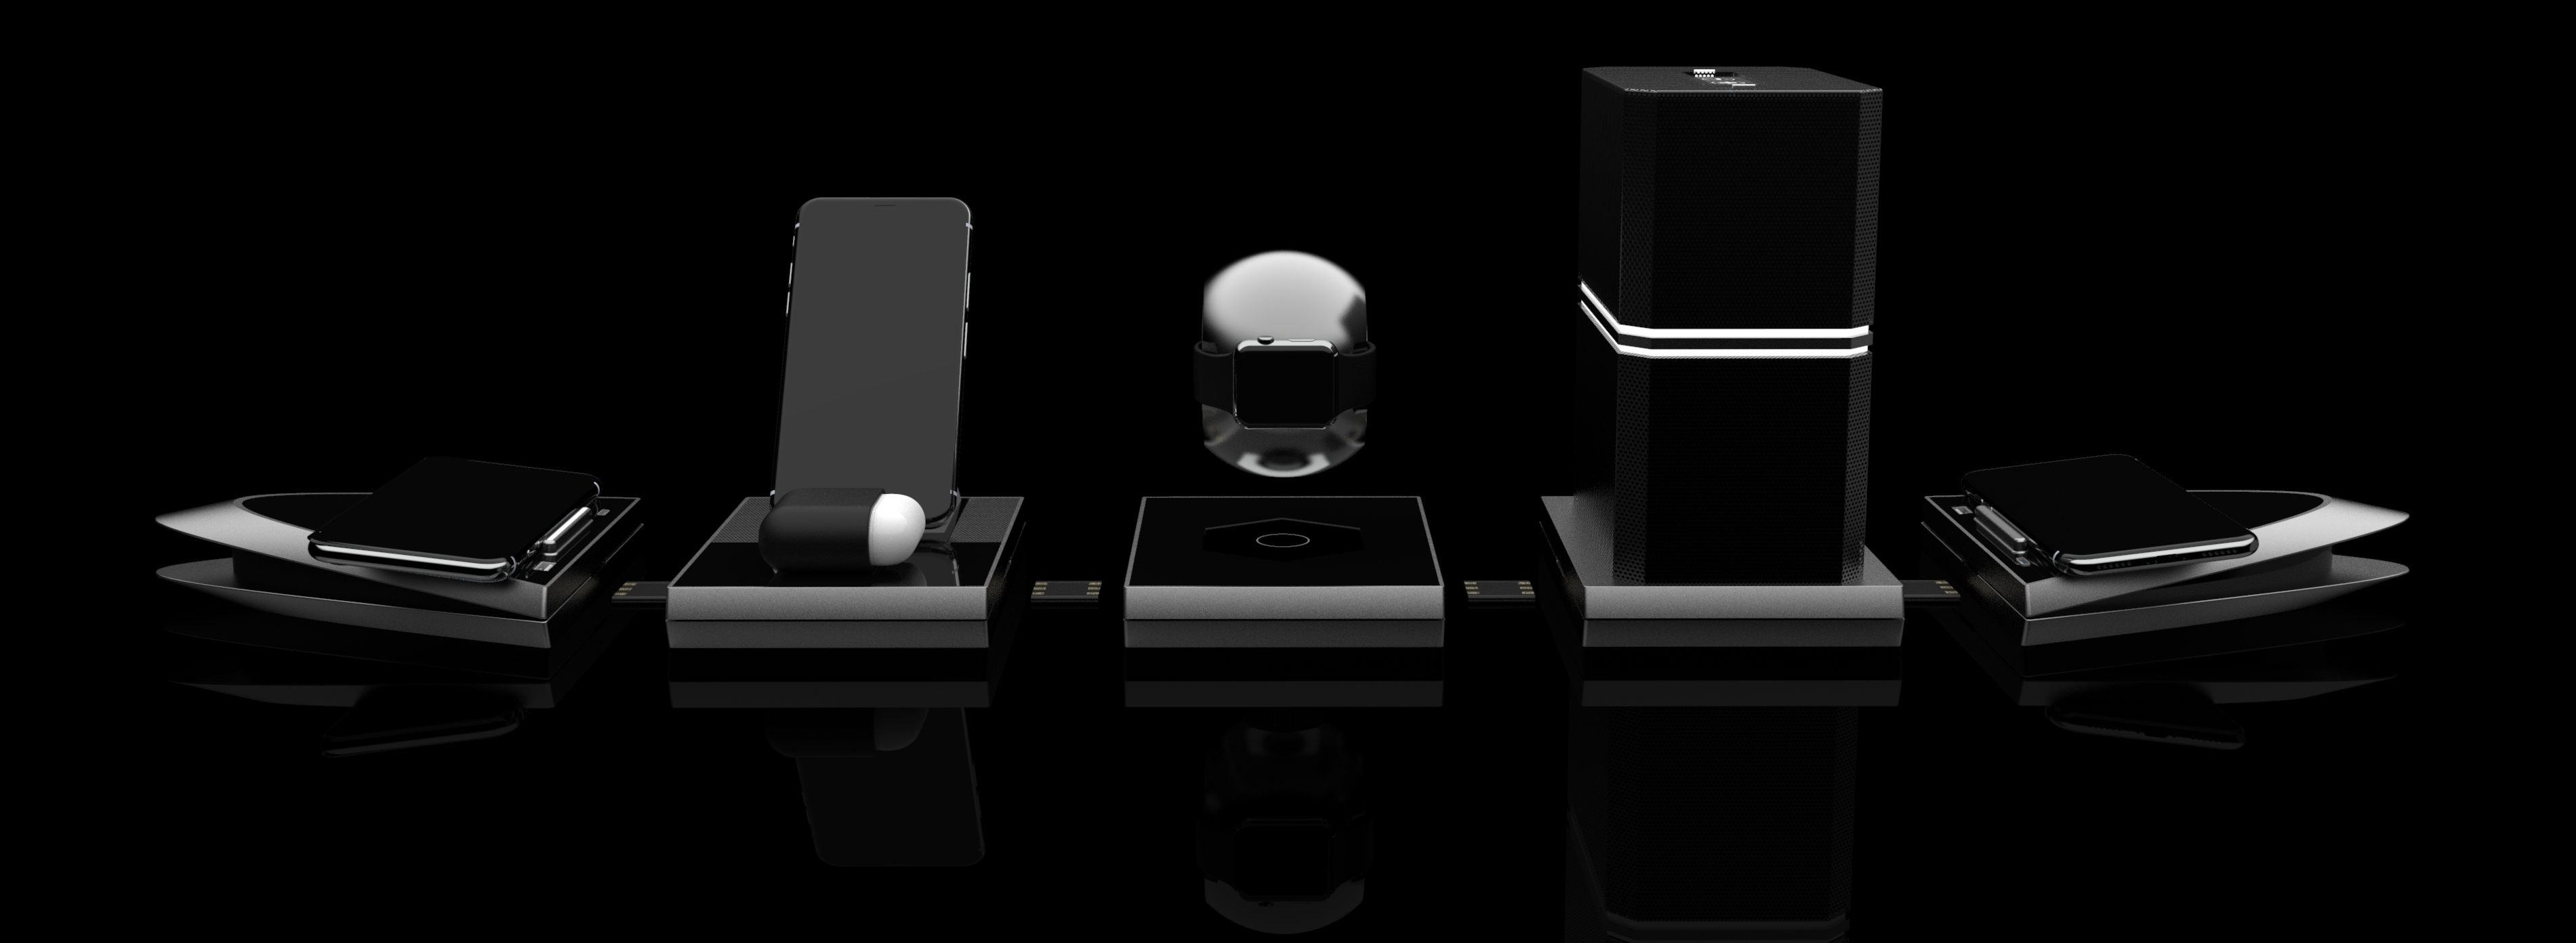 Photo of our AirPower alternative called Valkyrie which is a modular collection of devices that features a fast charging wireless charger, iPhone X and Apple Airpods charger, a levitating Apple Watch charger, and a wireless bluetooth 5.0 speaker